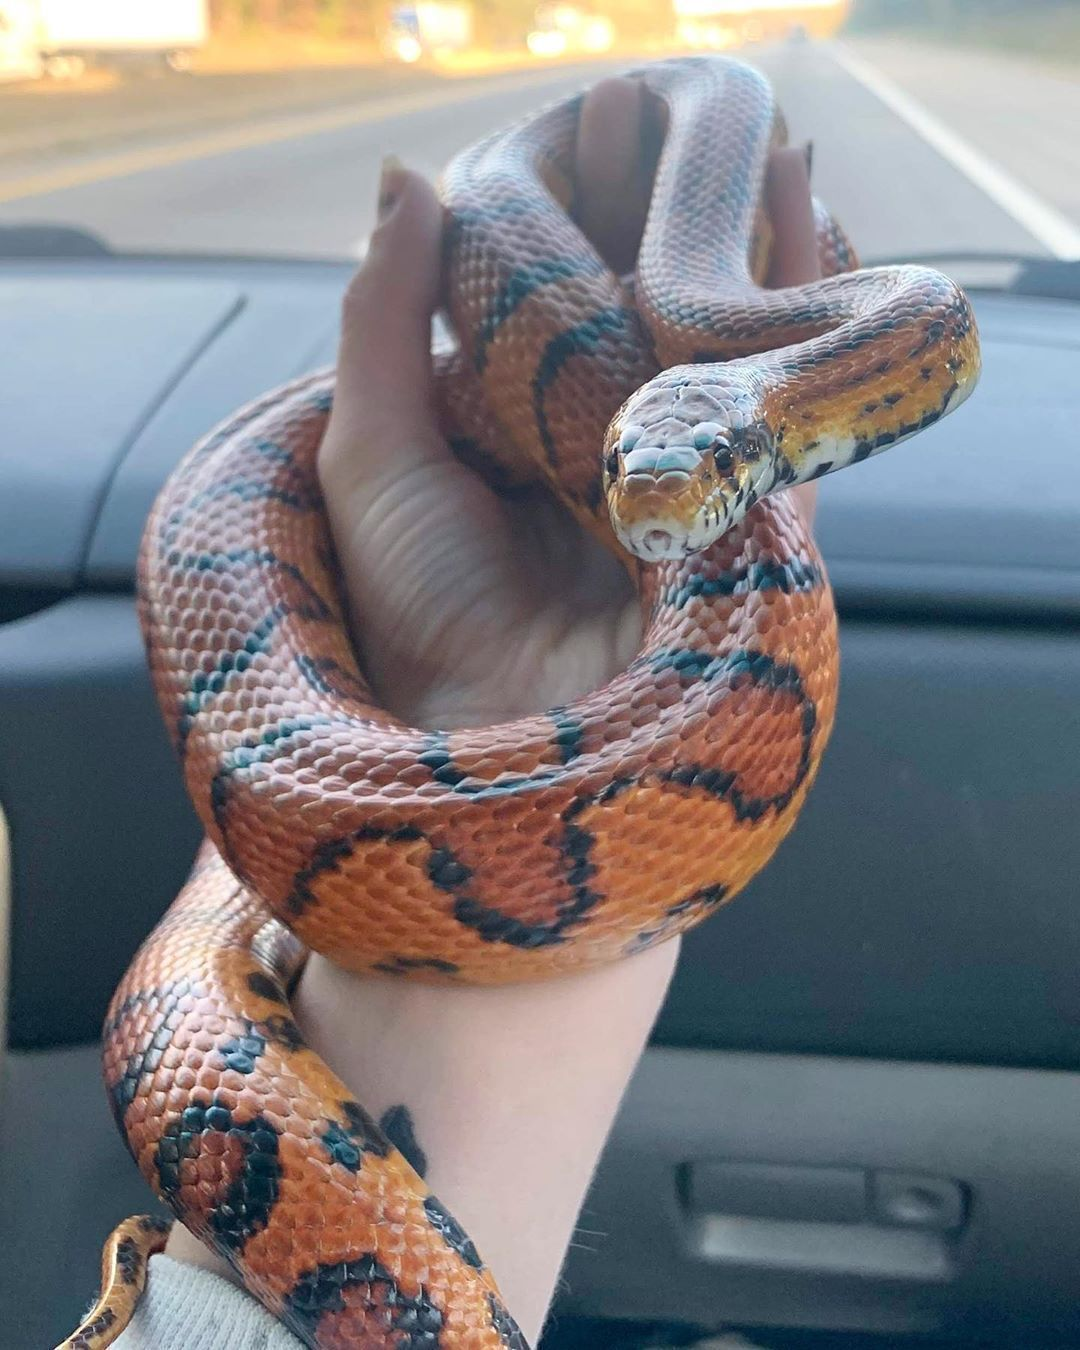 Do Corn Snakes Make Good Pets Yes Petcurve In 2020 Corn Snake Snake Pets